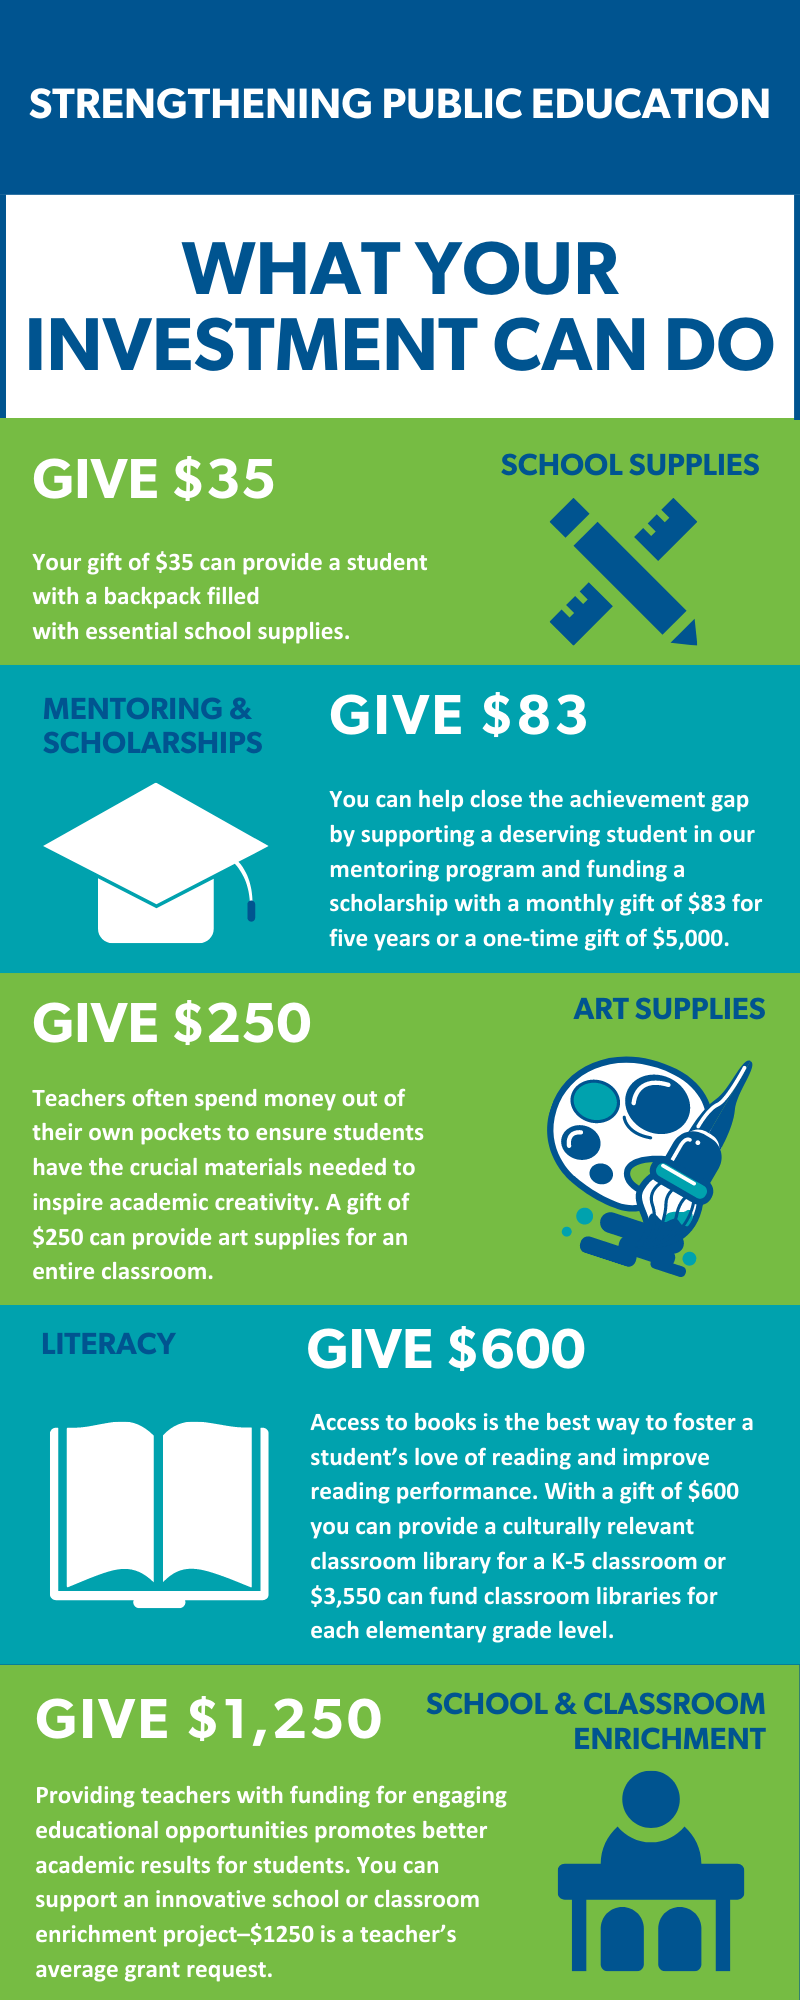 Hillsborough Education Foundation What Your Investment Can Do infographic